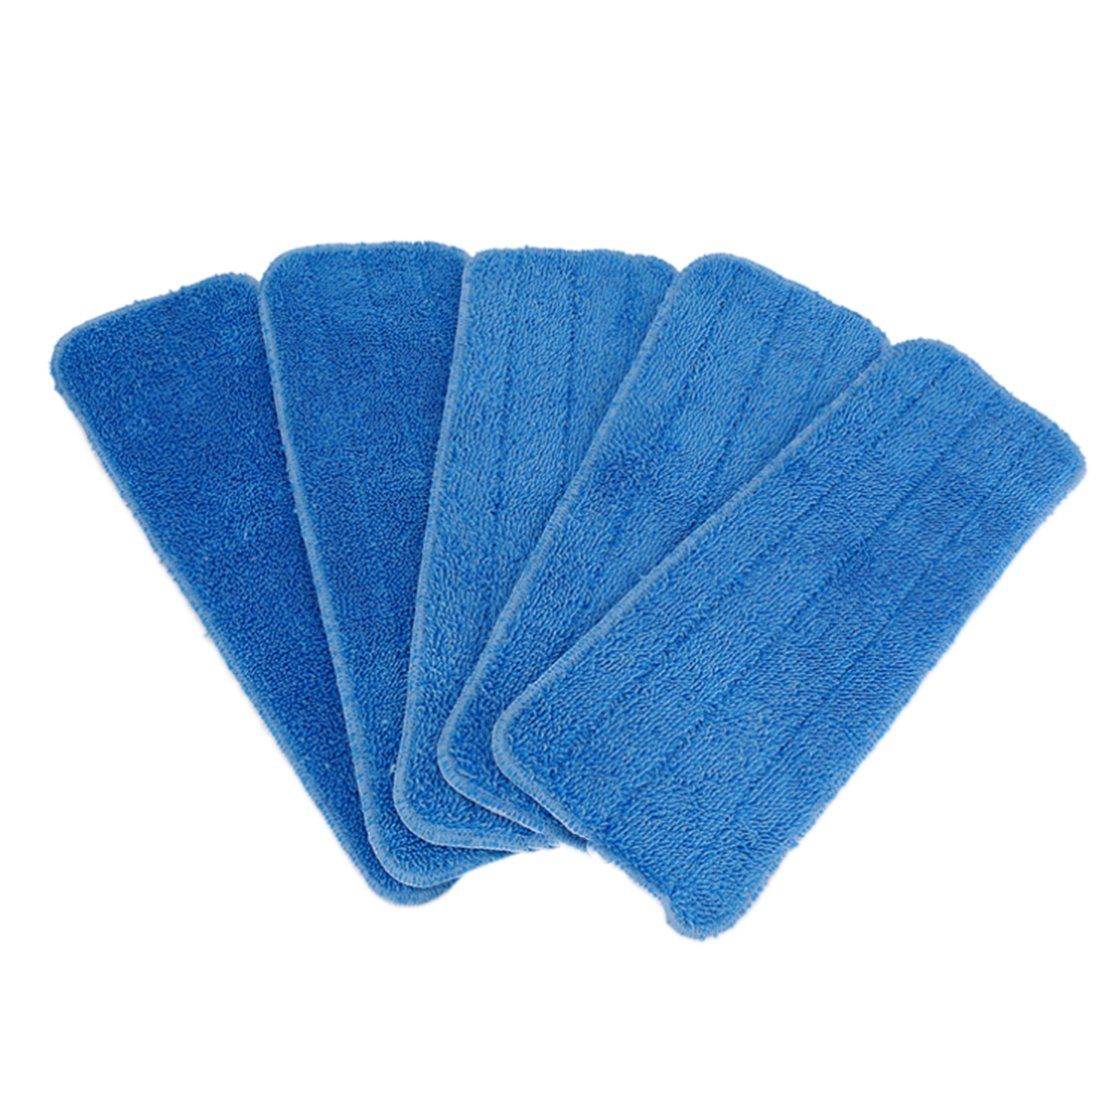 Microfiber Mop Pads, Yamix Set of 5 Hardwood and Floor Microfiber Spray Mop Pads Cleaning Pad Mop Refill Replacement Heads for Wet/Dry Mops,Spray and Spin Magic Mop - Blue